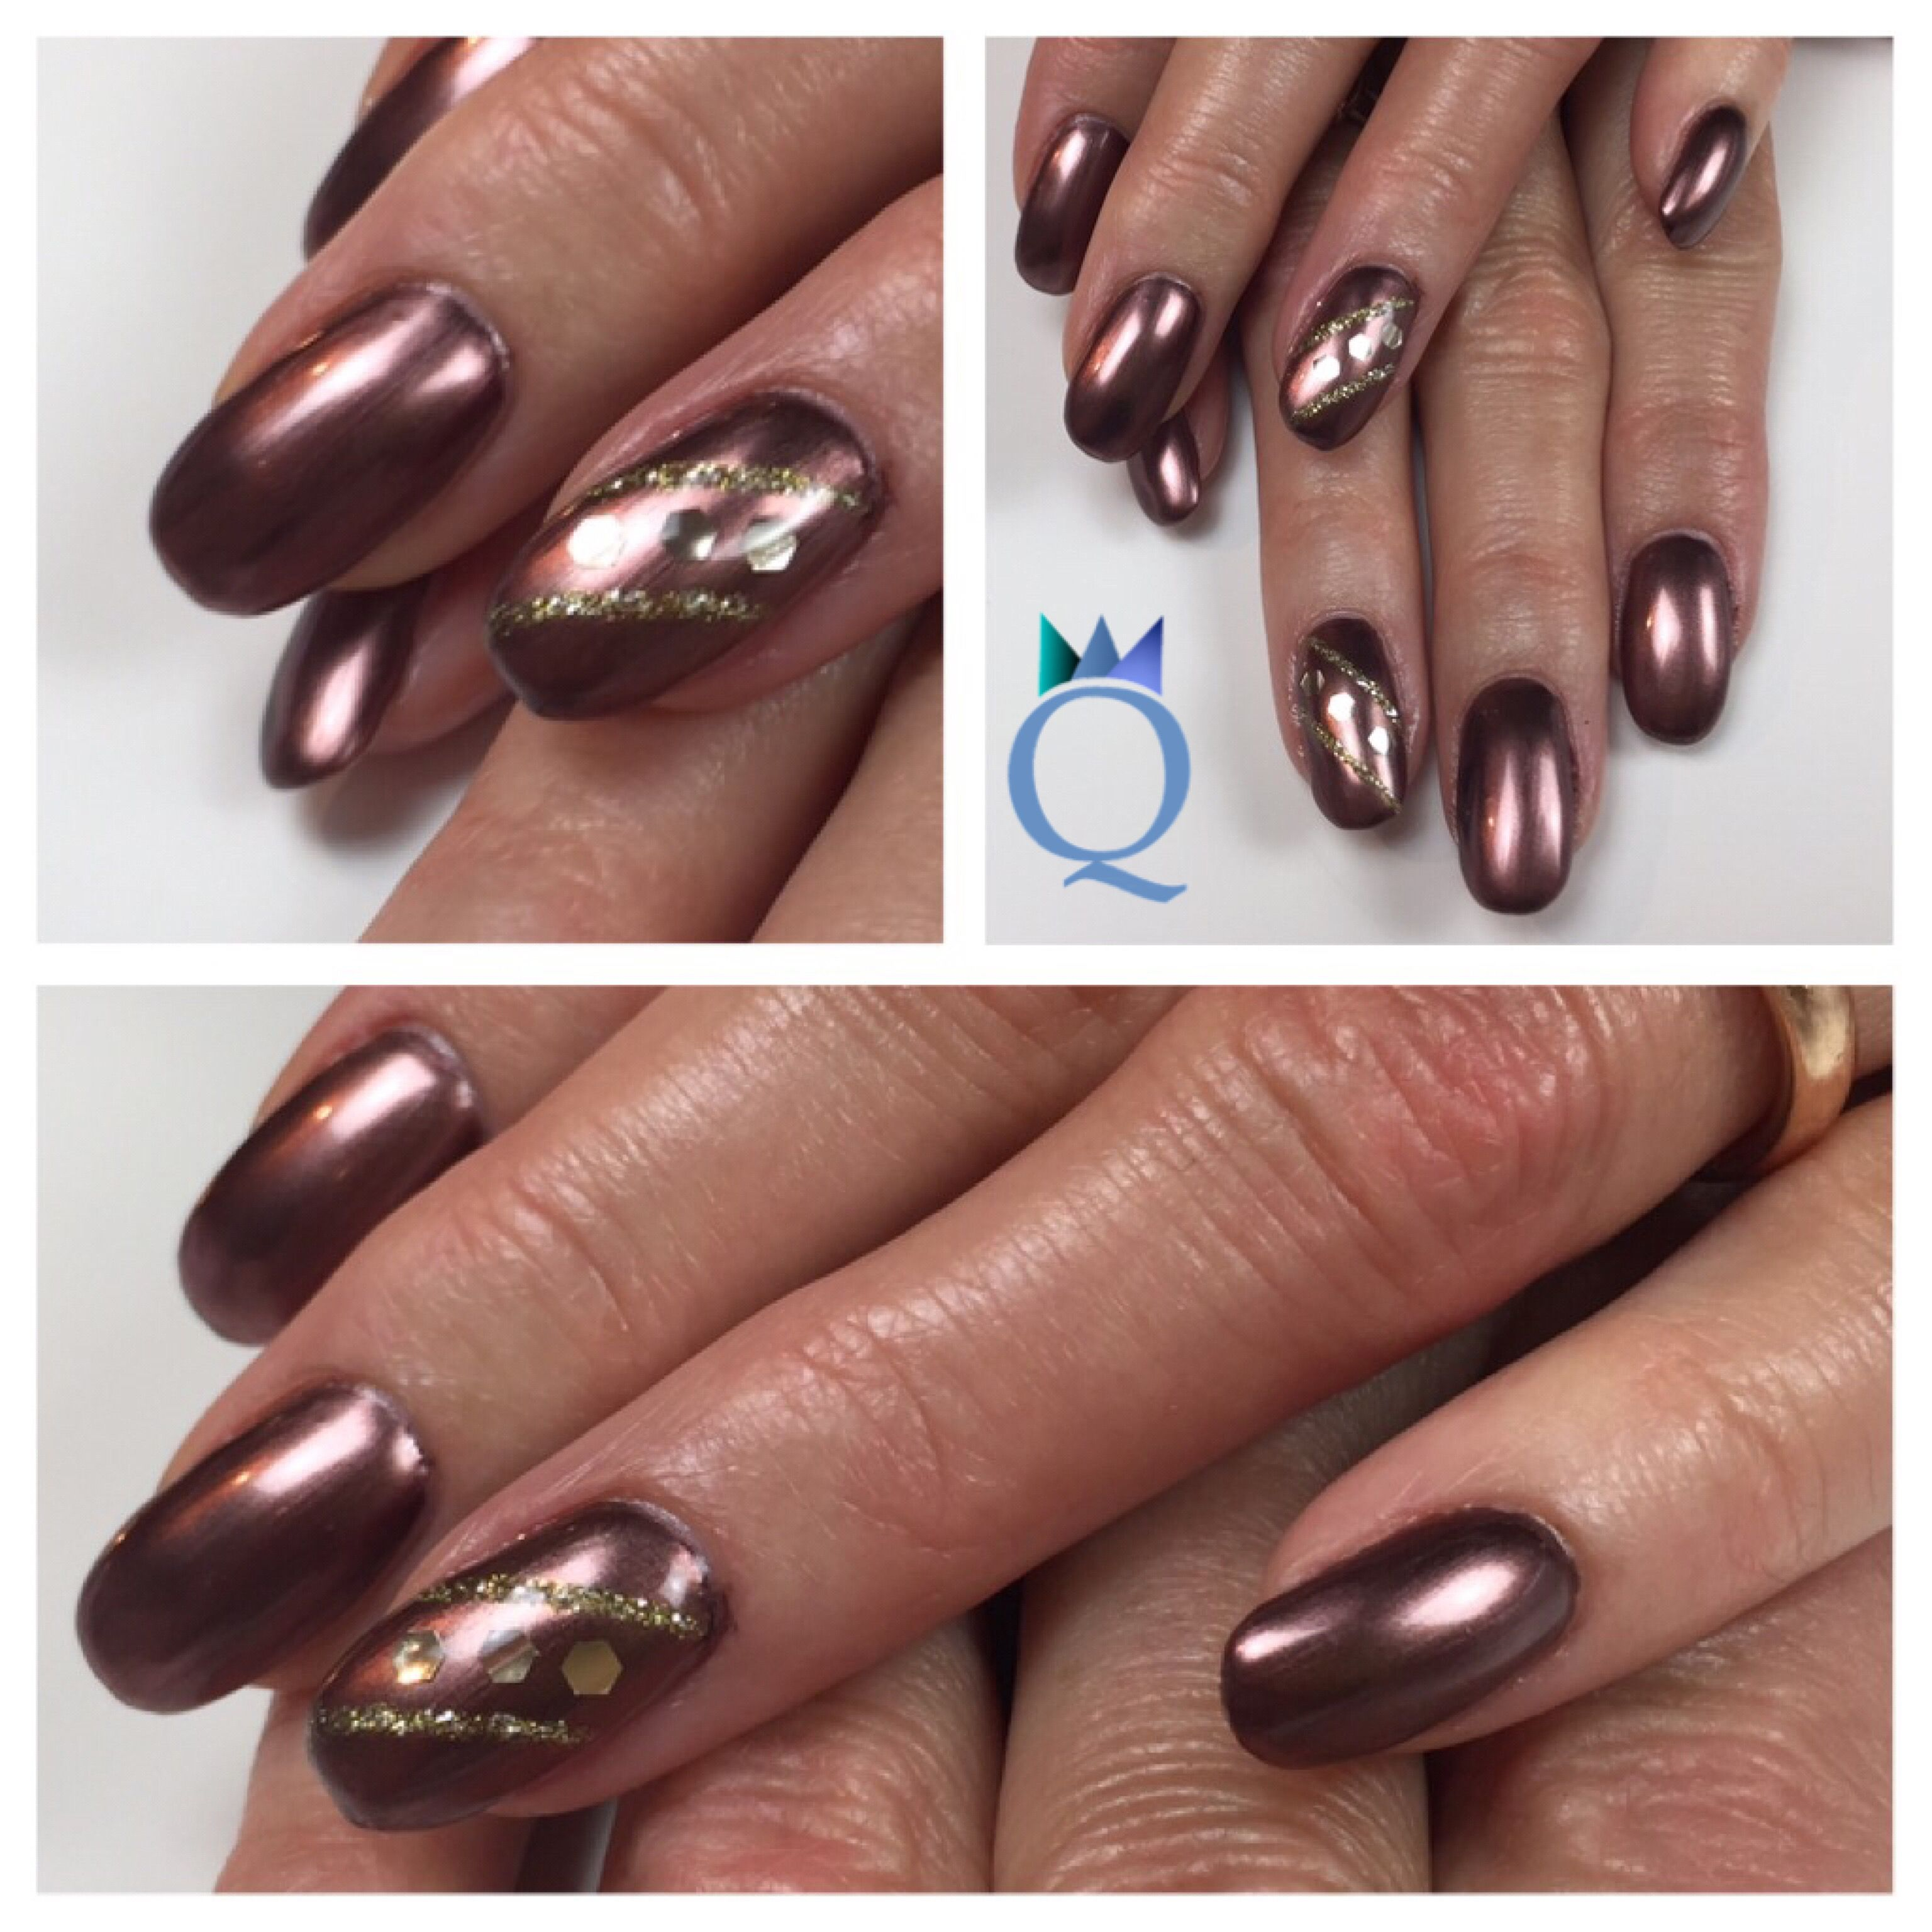 shortnails #gelnails #nails #brown #metallic #goldsilver #stripes ...